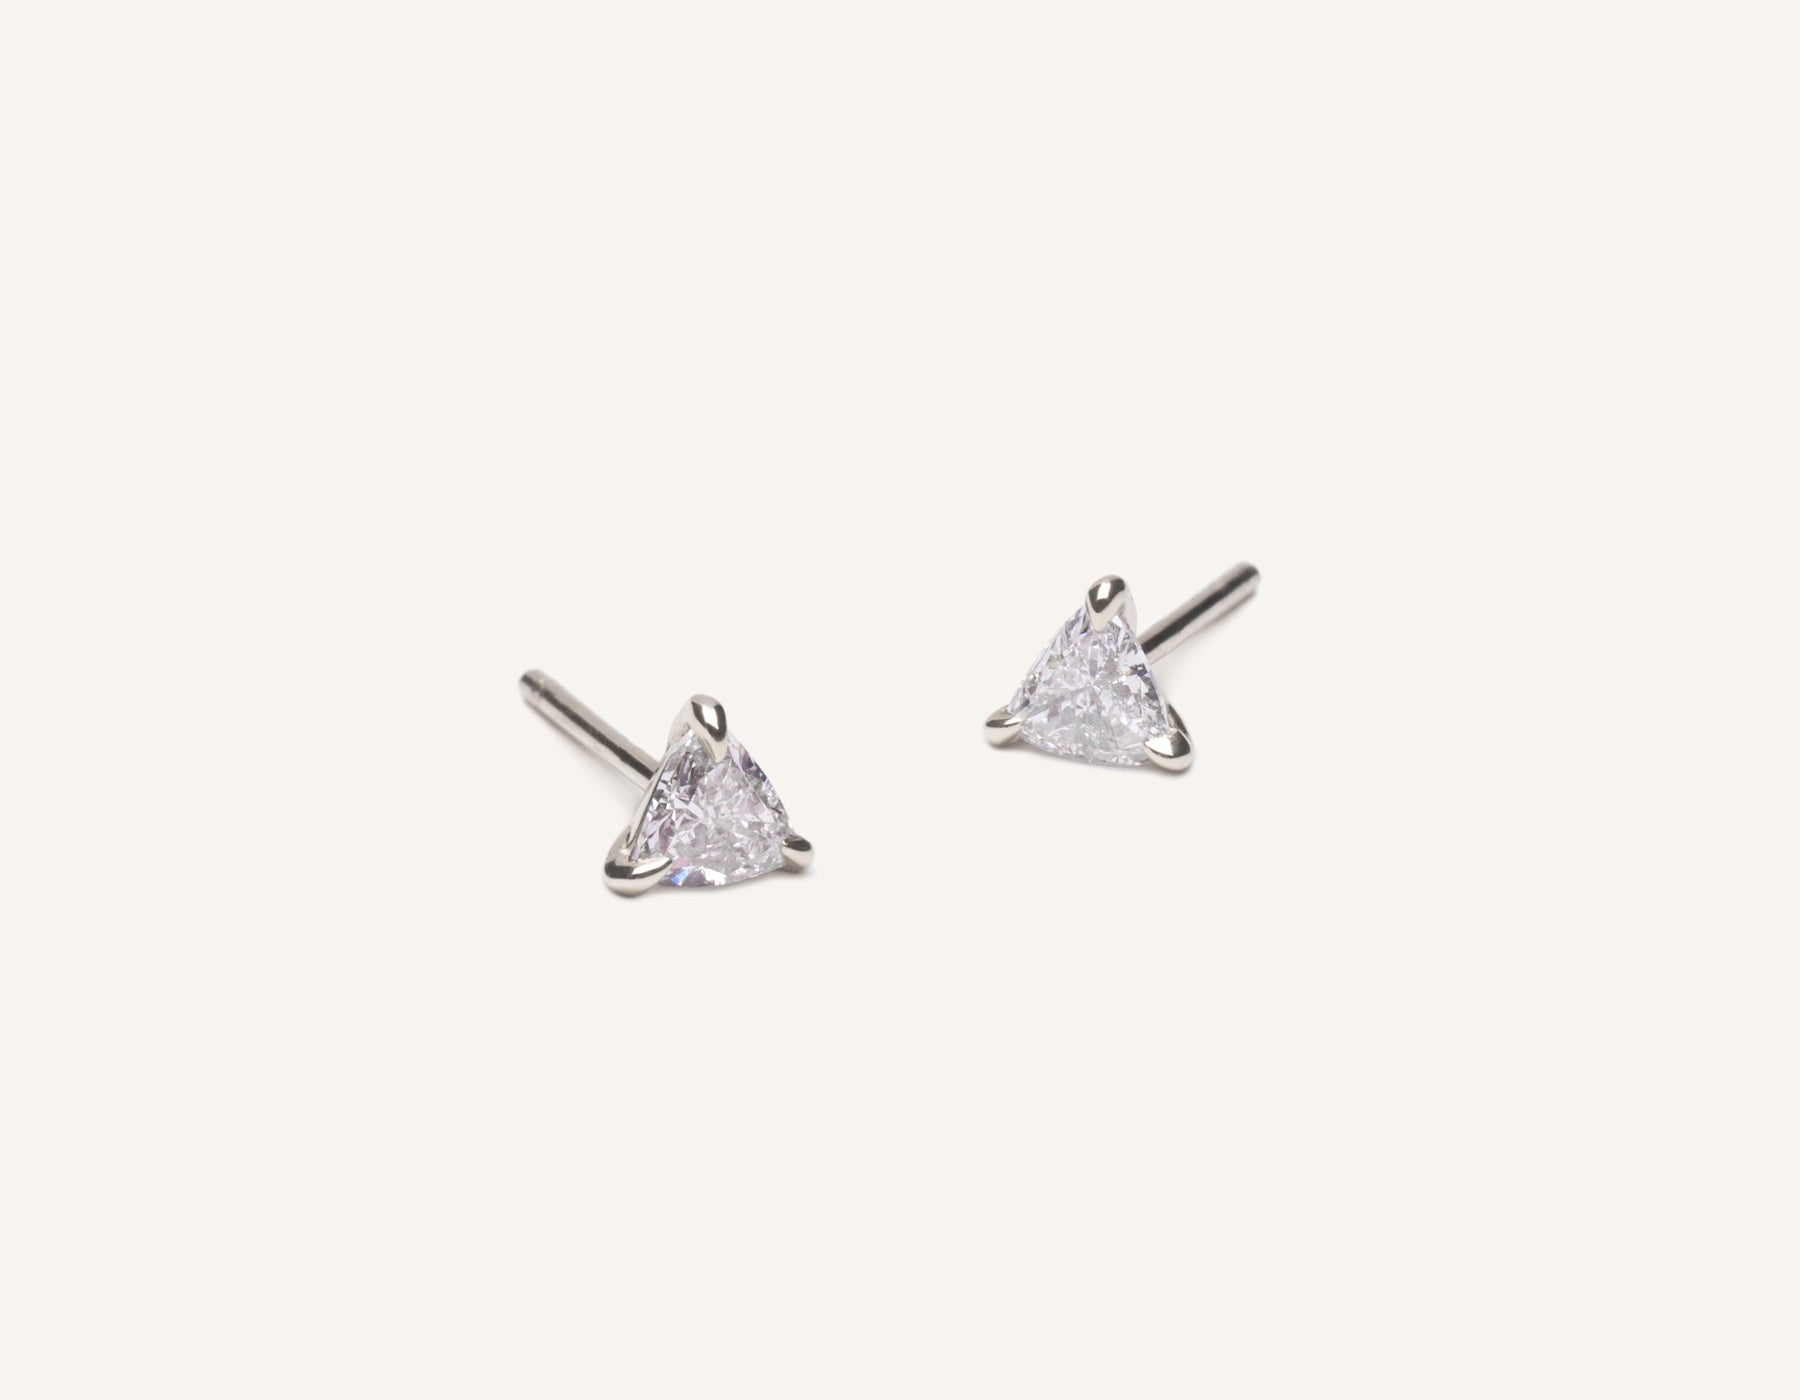 Modern delicate 14k solid gold .34 carat Trillion Diamond Earrings by Vrai & Oro, 14K White Gold